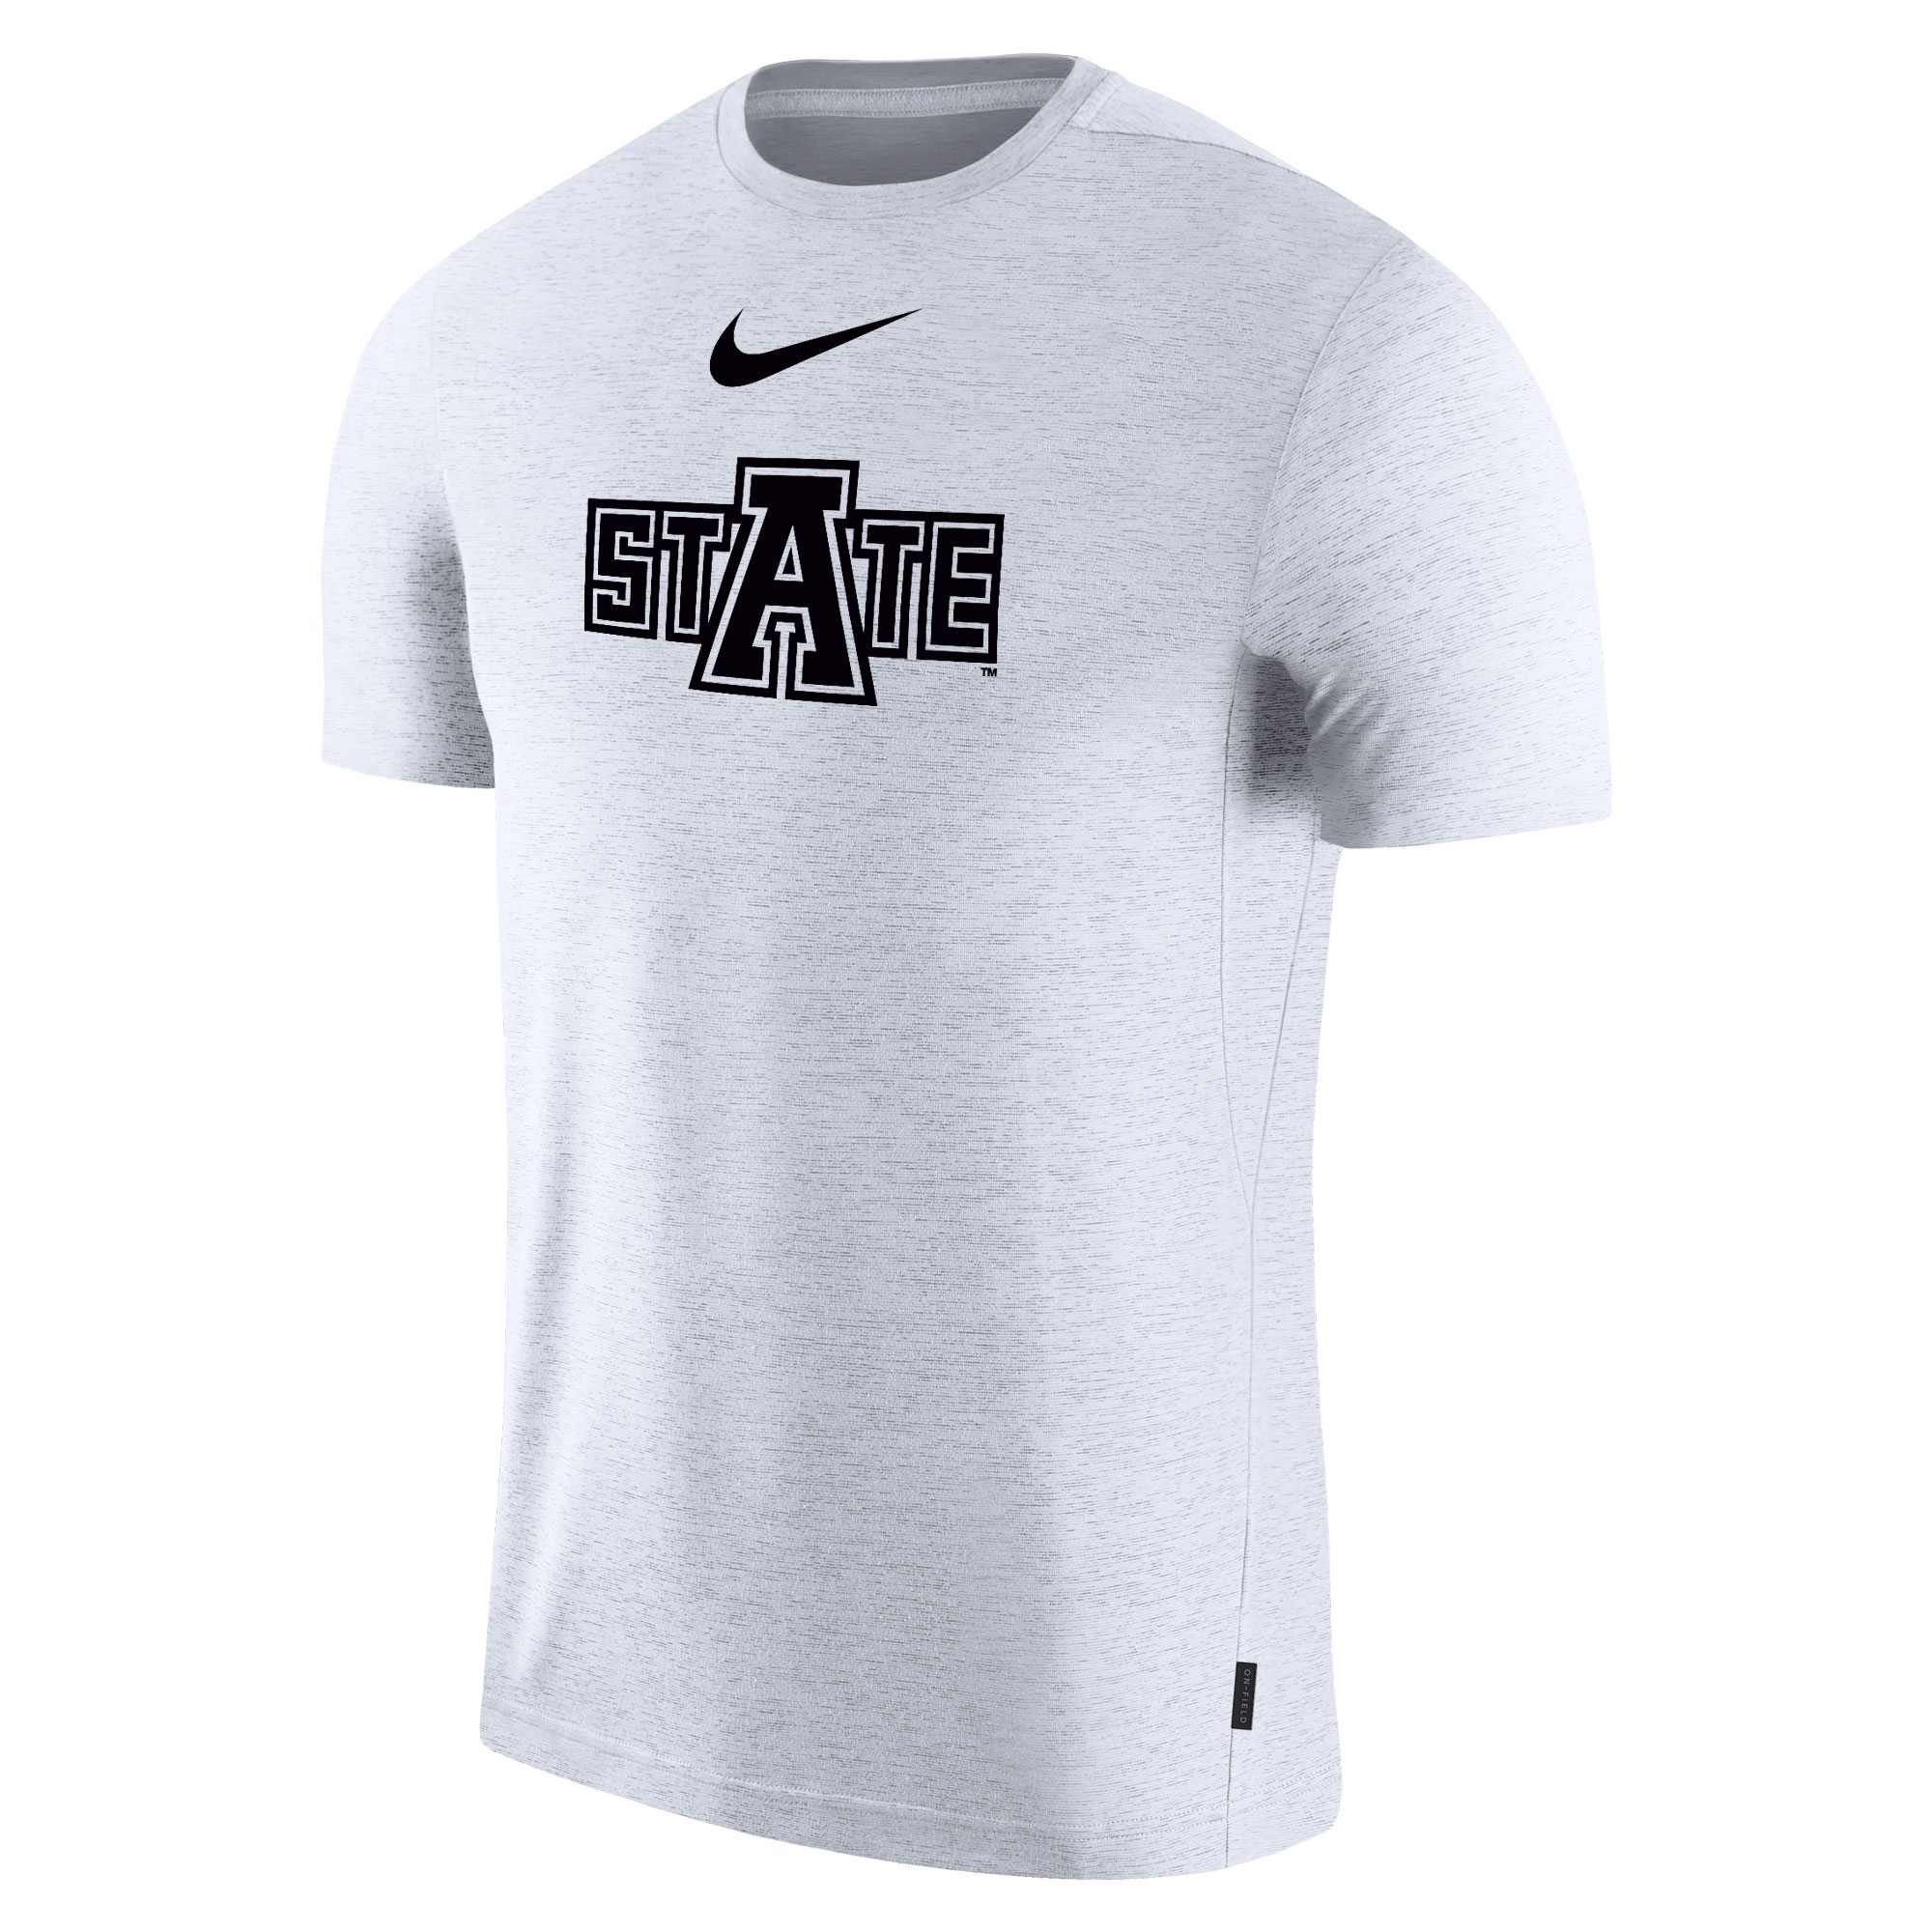 Arkansas State Coach SS Top